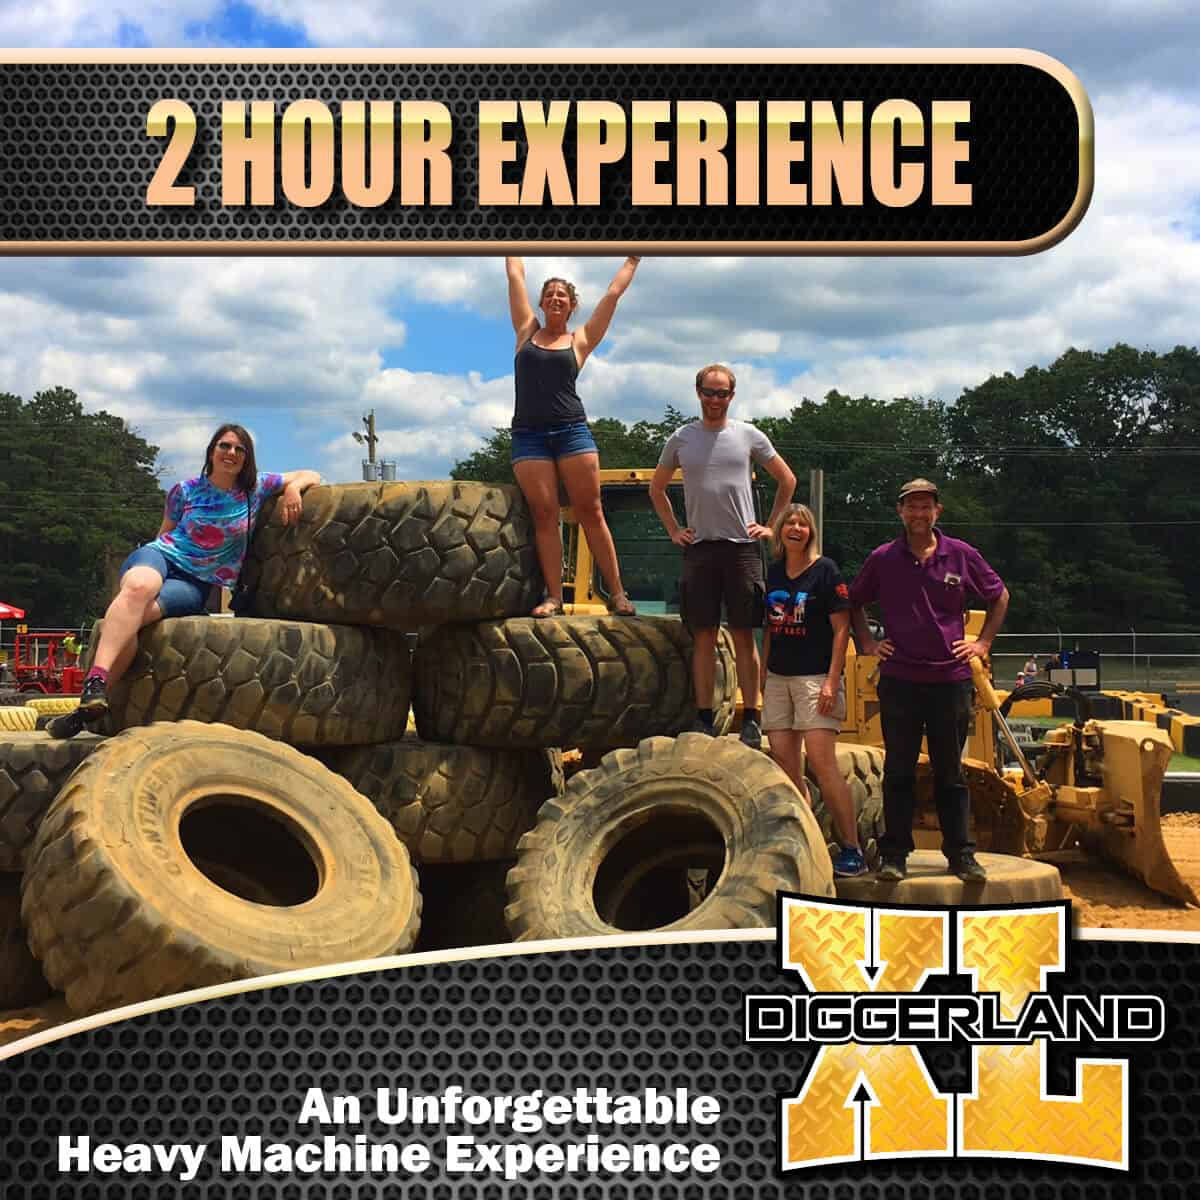 Diggerland XL experience 2 hour package